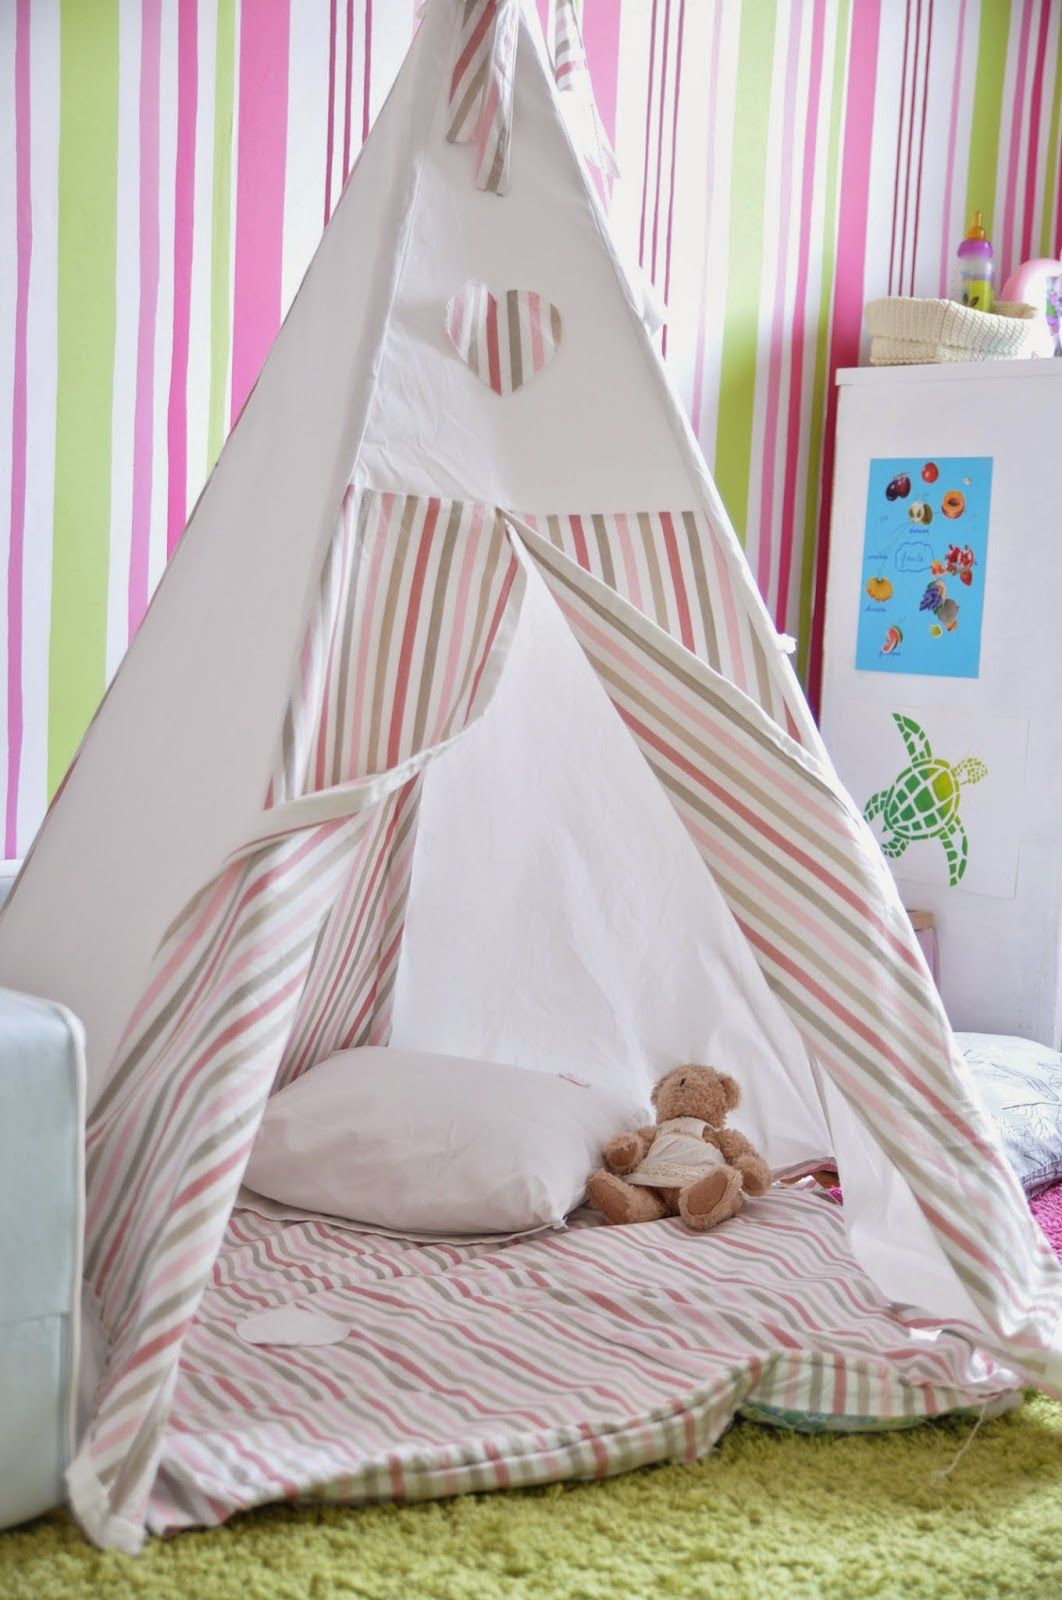 comment construire un tipi et b b grandit avec montessori projekty do wypr bowania. Black Bedroom Furniture Sets. Home Design Ideas